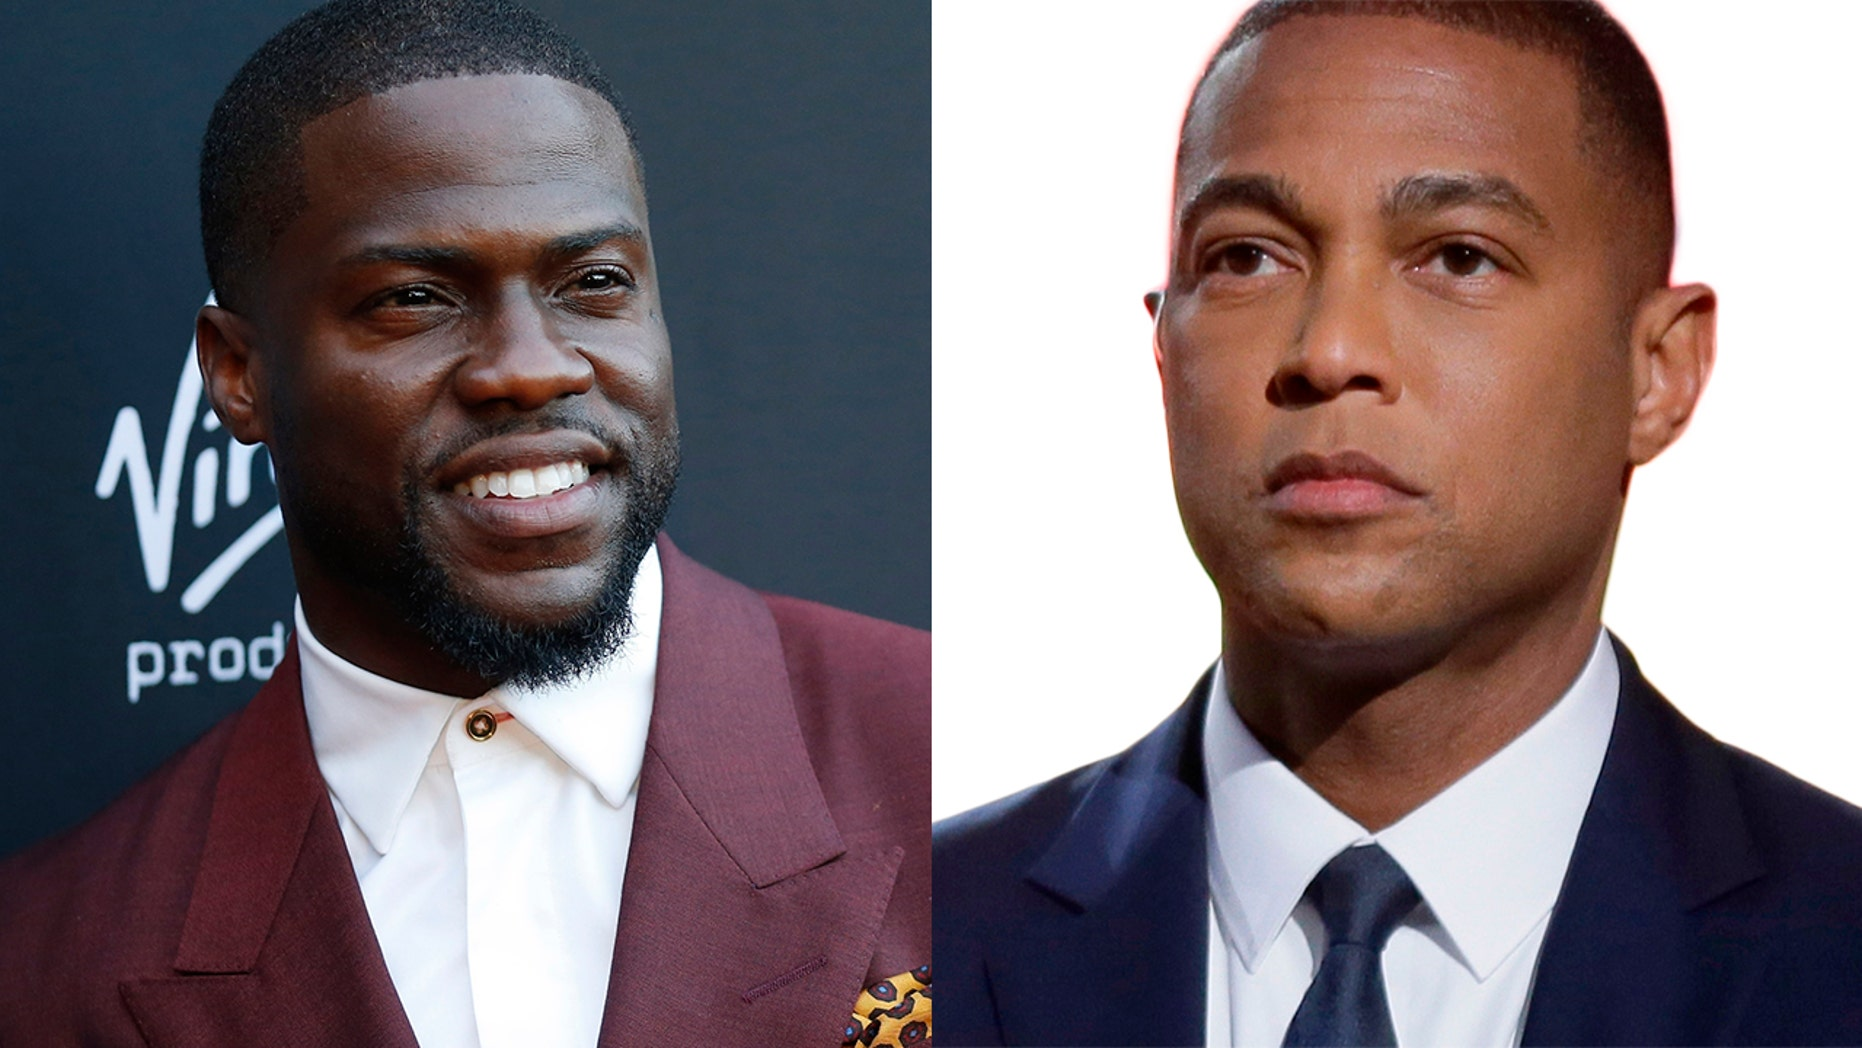 Kevin Hart confirms he will not host Oscars after homophobic tweets